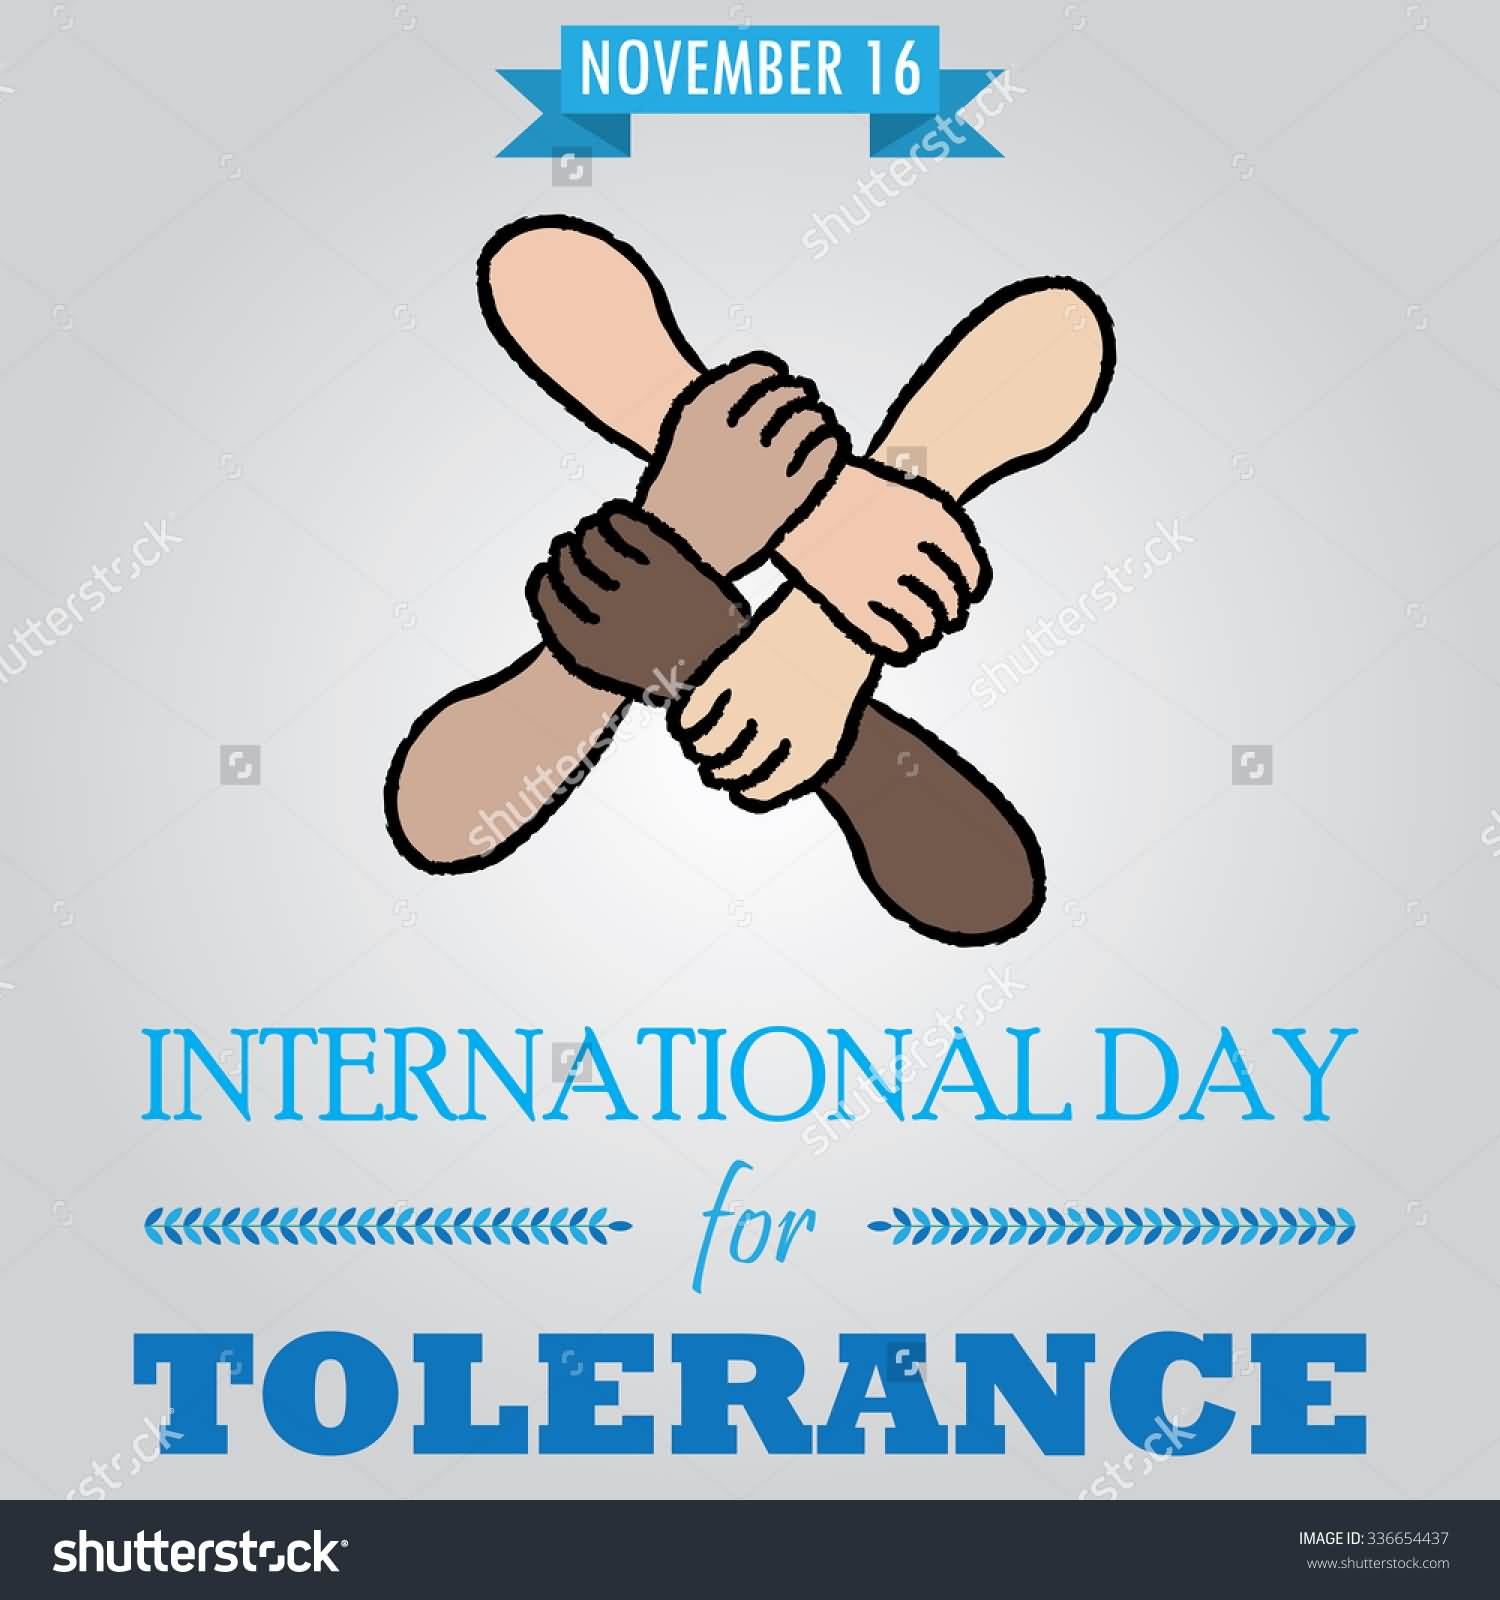 28 international day for tolerance wish pictures and photos november 16 international day for tolerance connecting hands illustration biocorpaavc Image collections